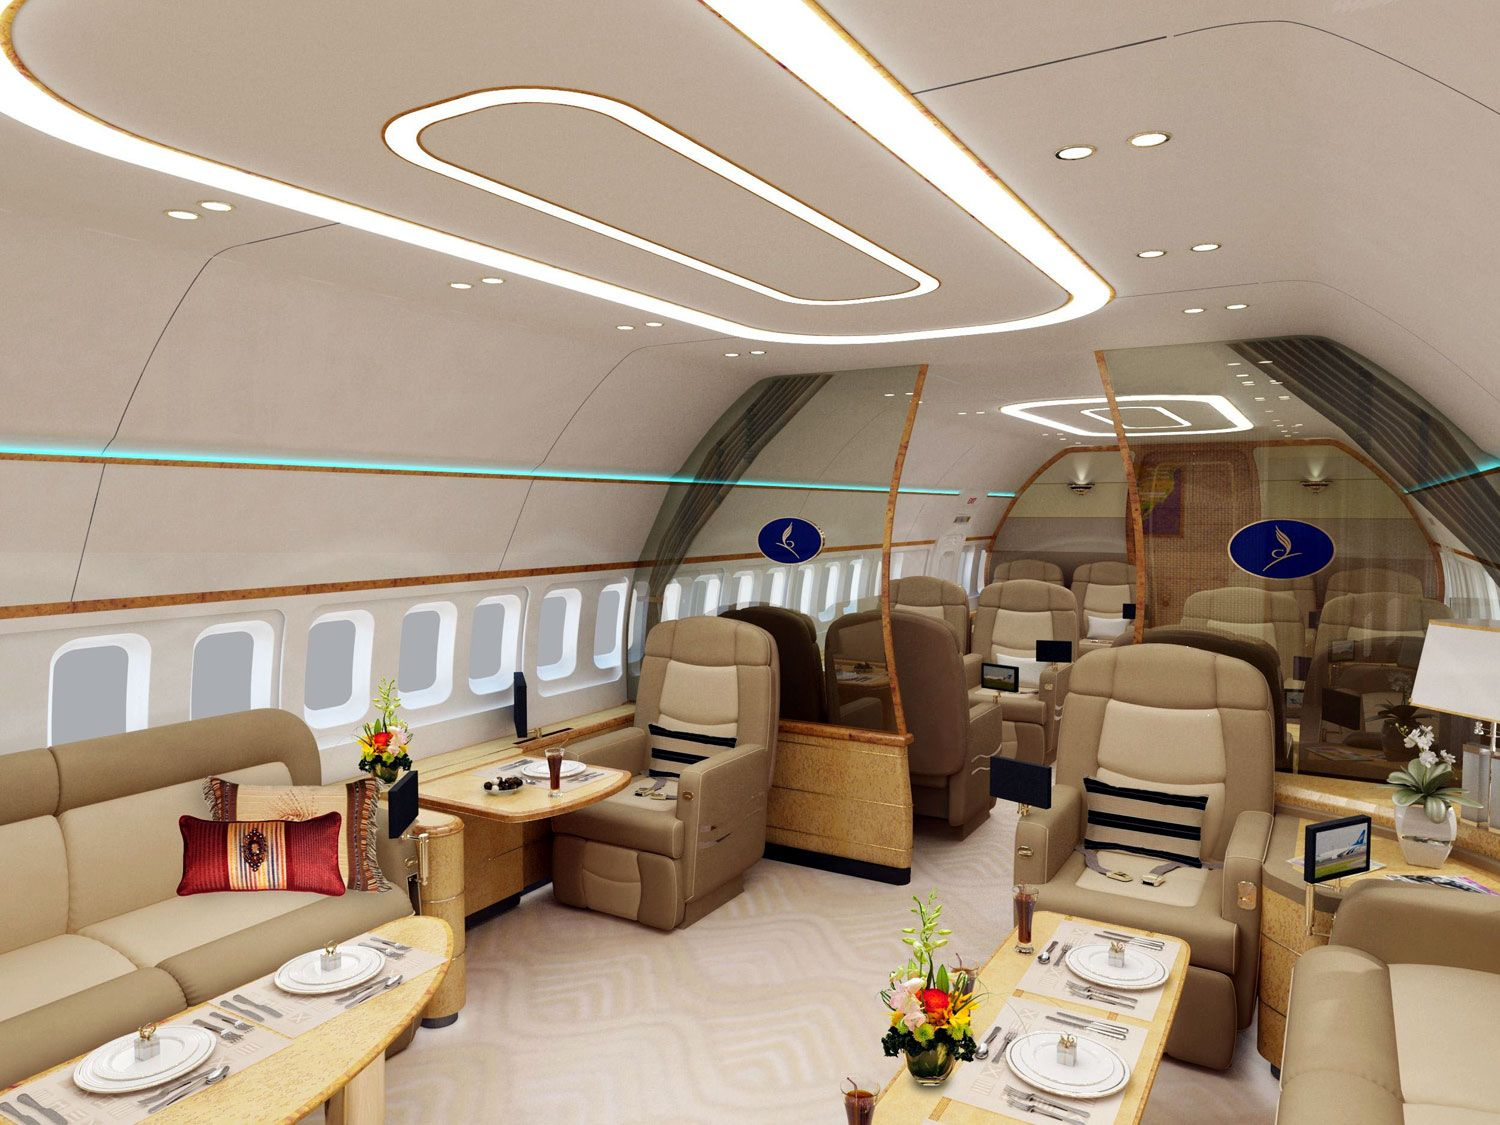 Luxury Planes Luxury Private Jets Private Jet Interiors Private Jet Charters Luxury Private Jets Private Jet Interior Airplane Interior